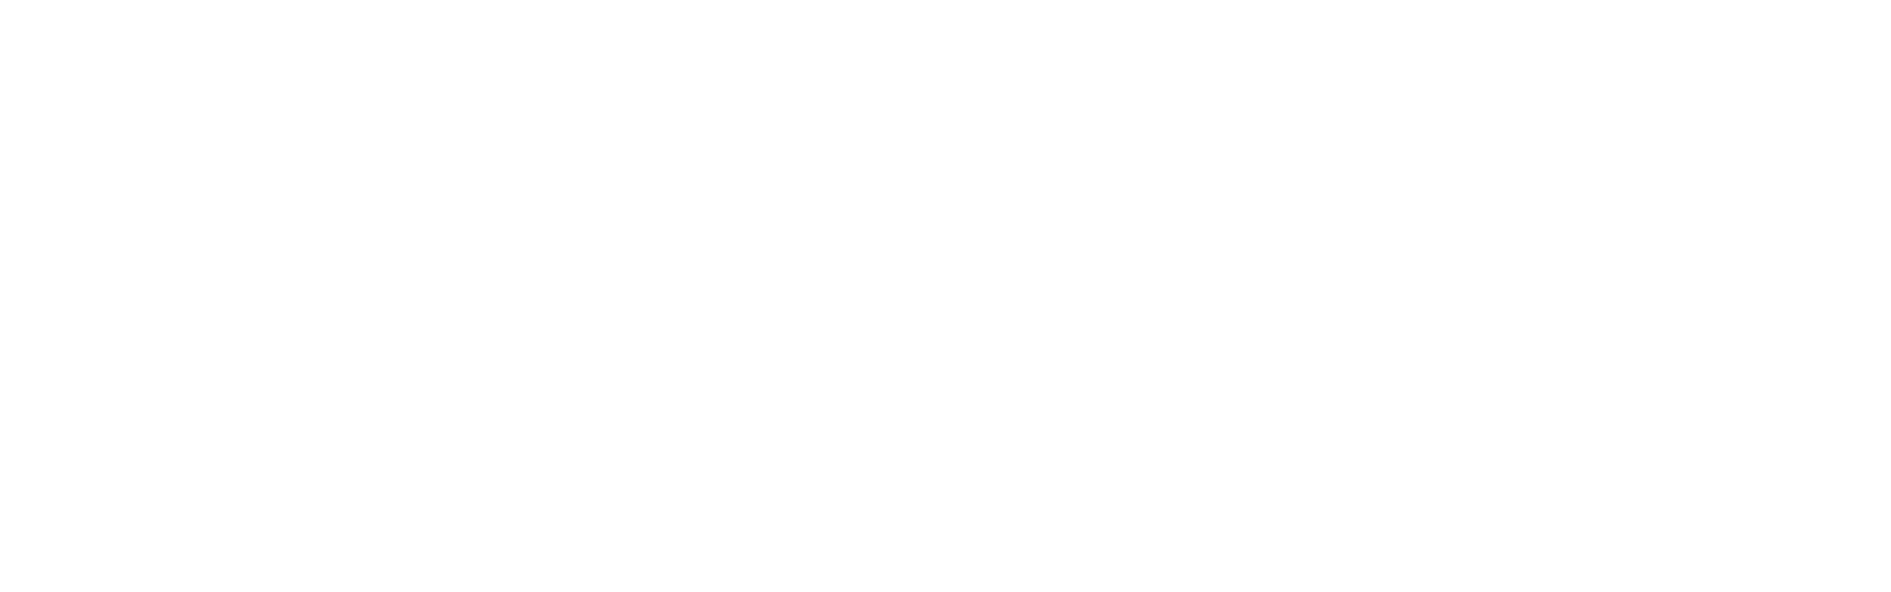 TKM Development Inc.